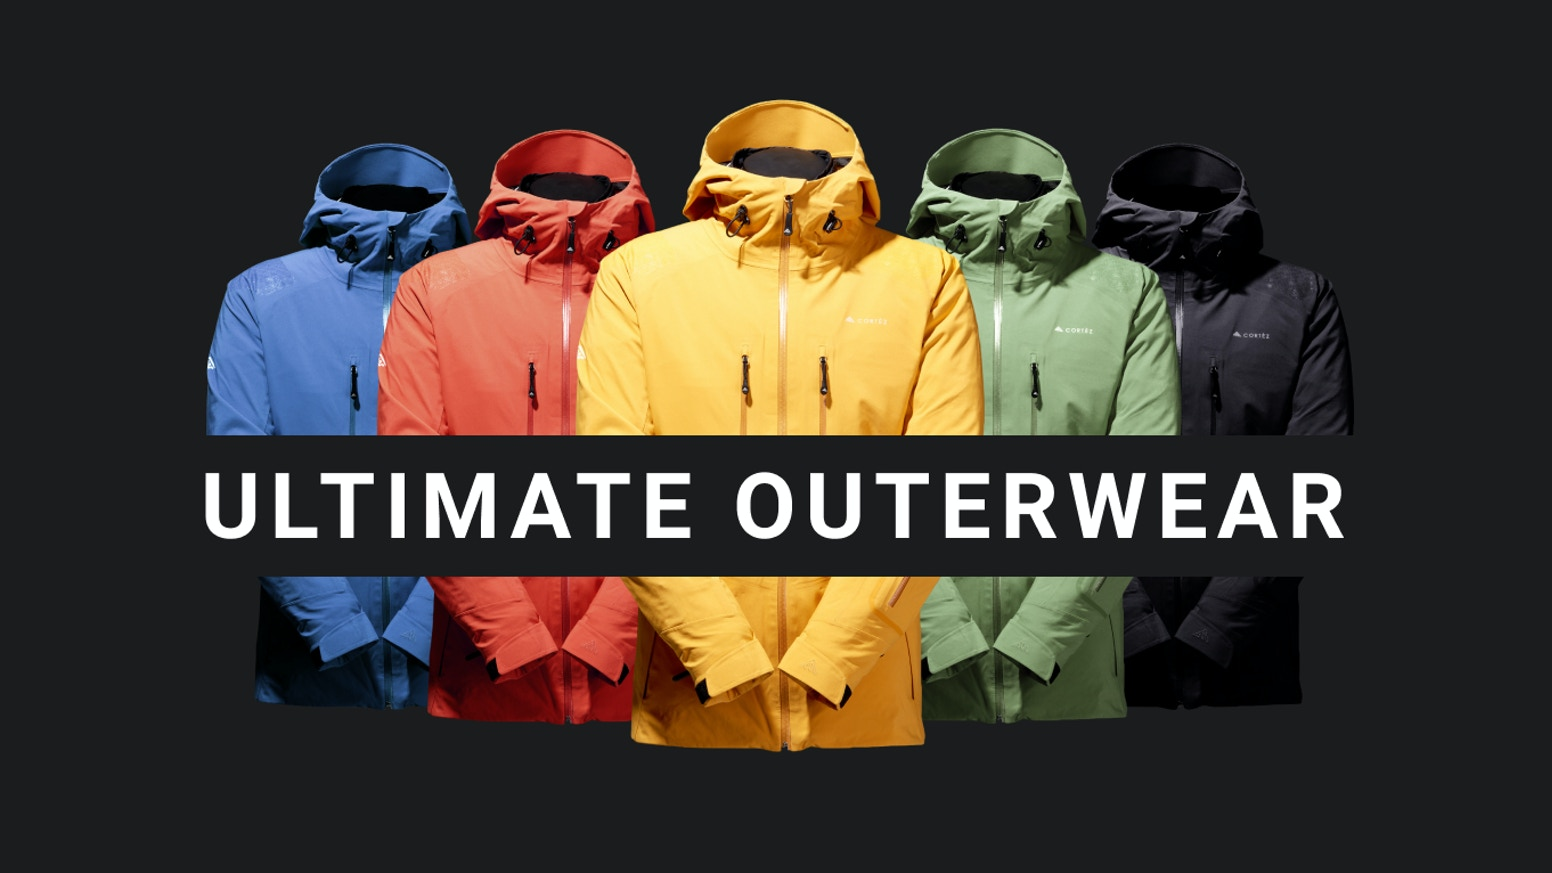 Cortazu: Outerwear for all your adventures. High-quality materials - outstanding design - excellent value - straight from the manufacturer.